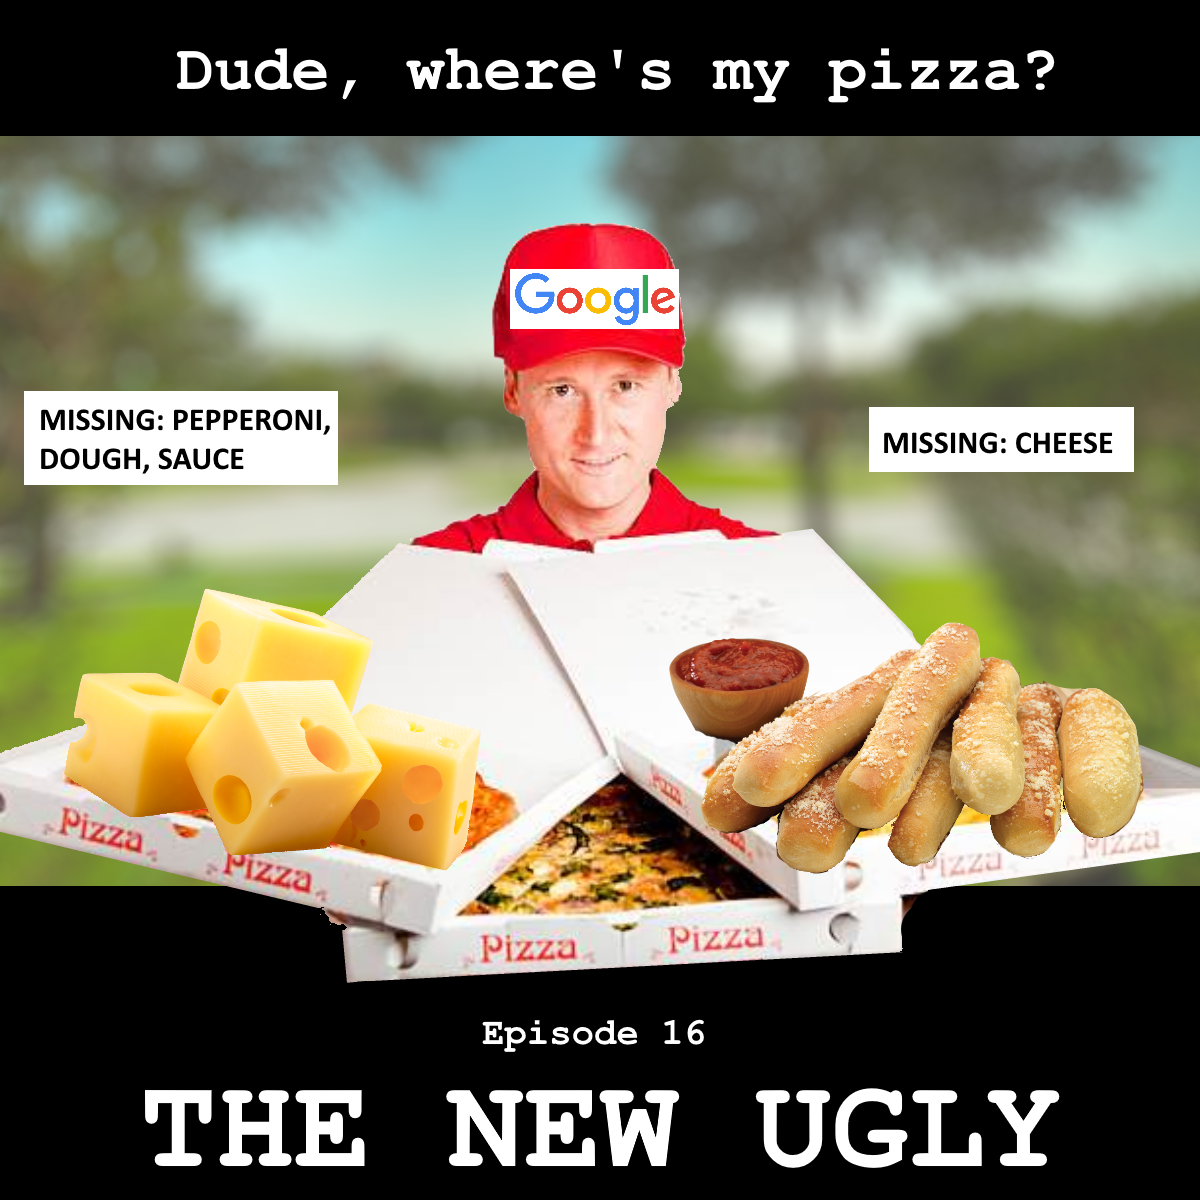 Episode 16: Dude, where's my pizza?